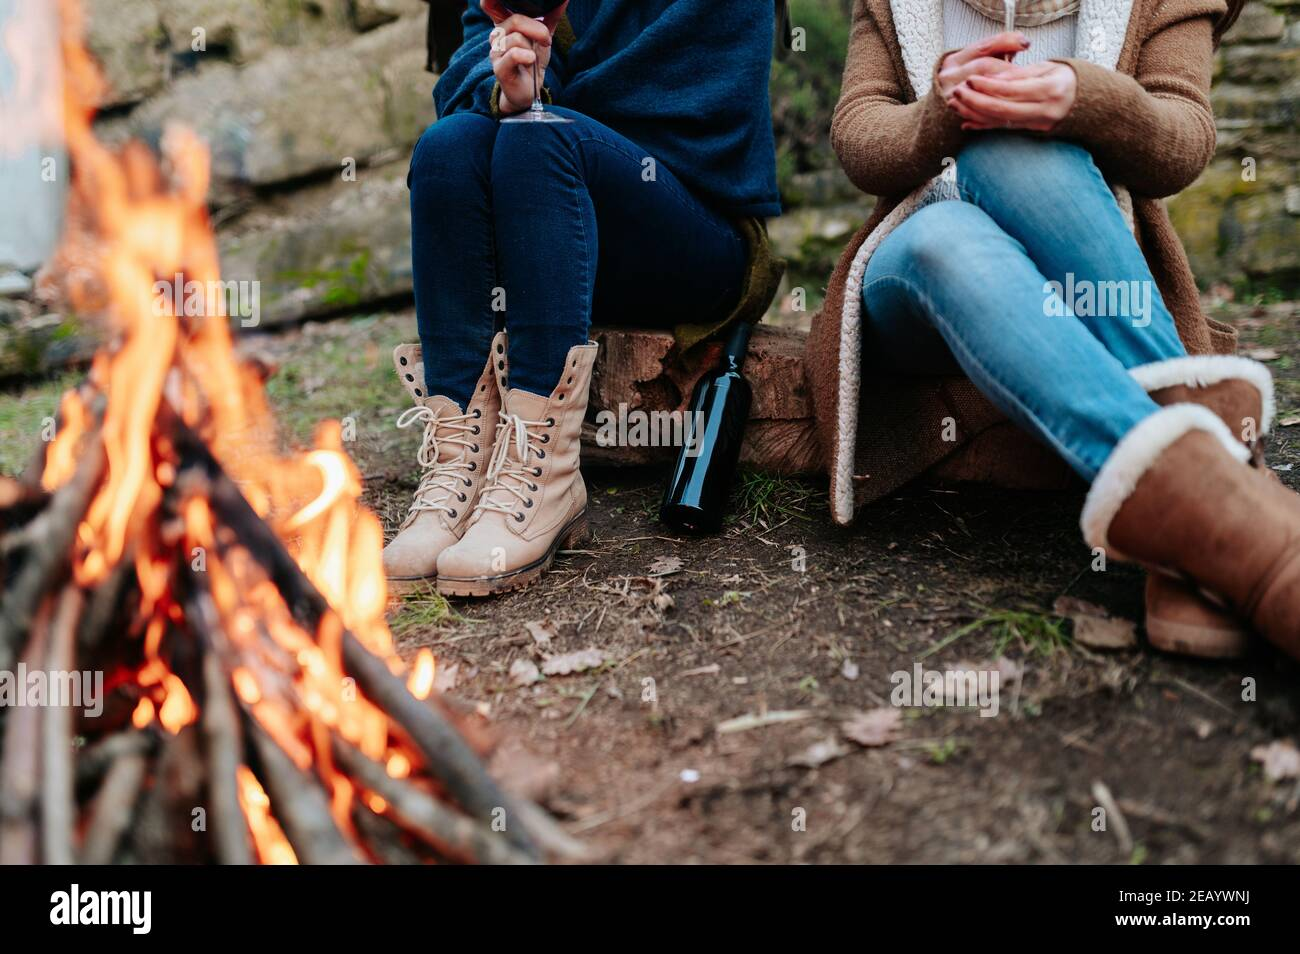 Unrecognizable women holding glass of red wine in campfire warming next to a fire. Stock Photo